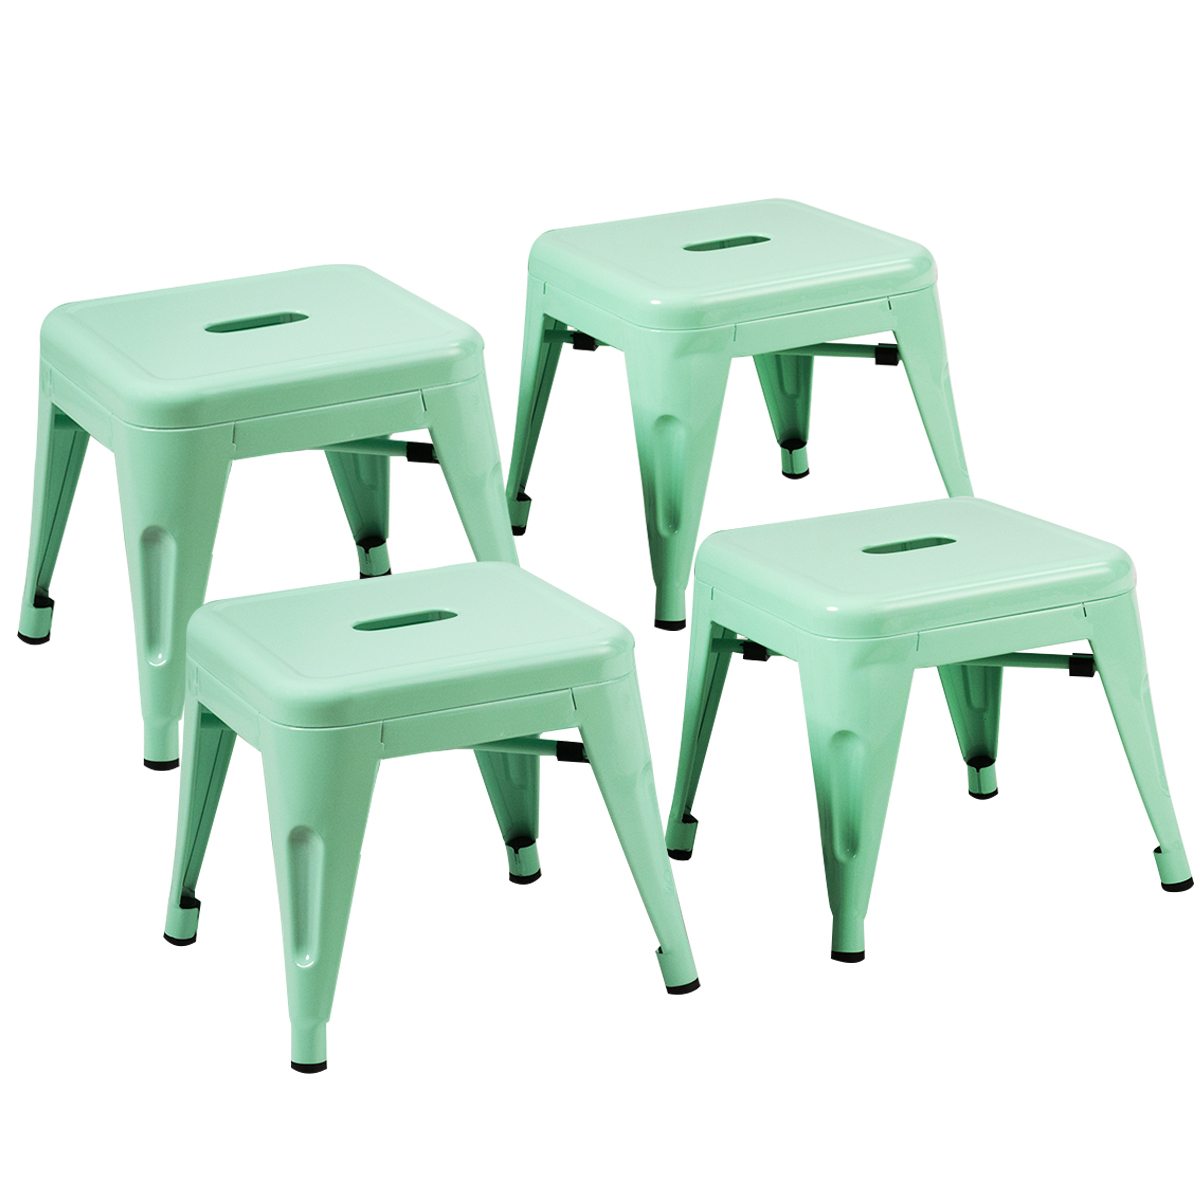 4-Set Tolix Style Stackable Kids Steel Stool Metal Square Home Toddler Green